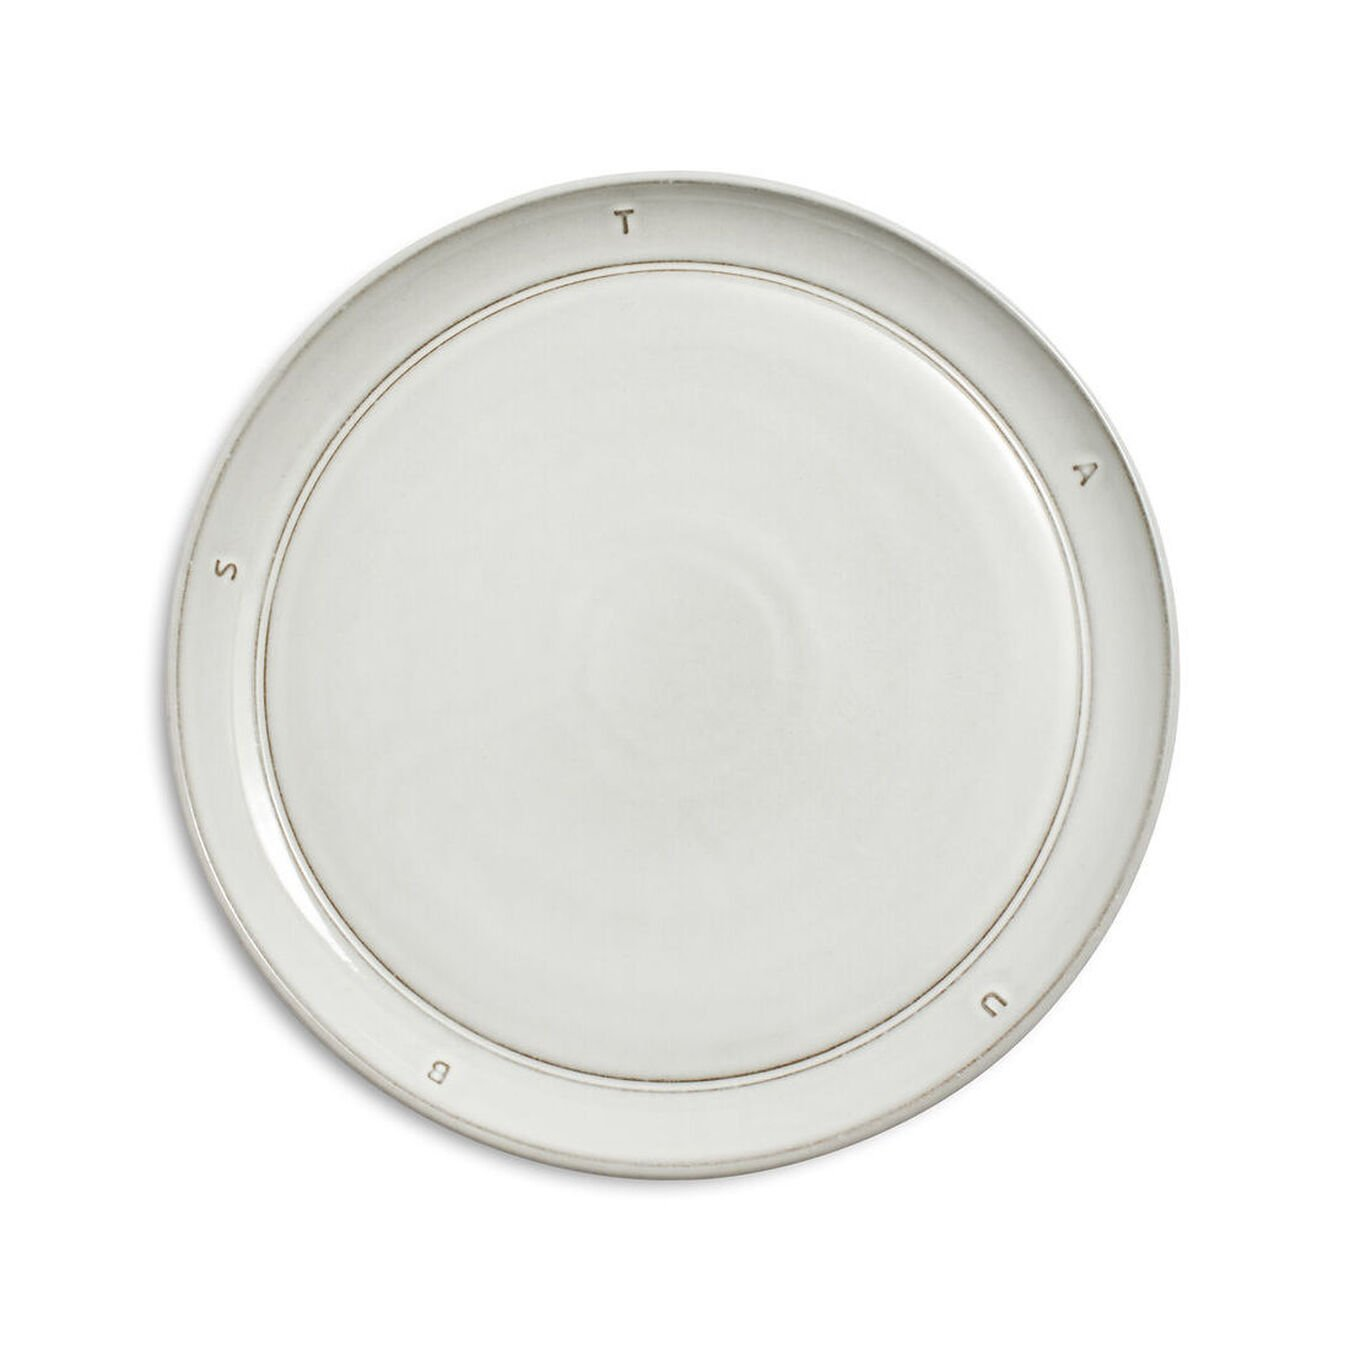 """8.5-inch, Salad Plate 22cm / 8.6"""" - Off White, Off-White,,large 1"""